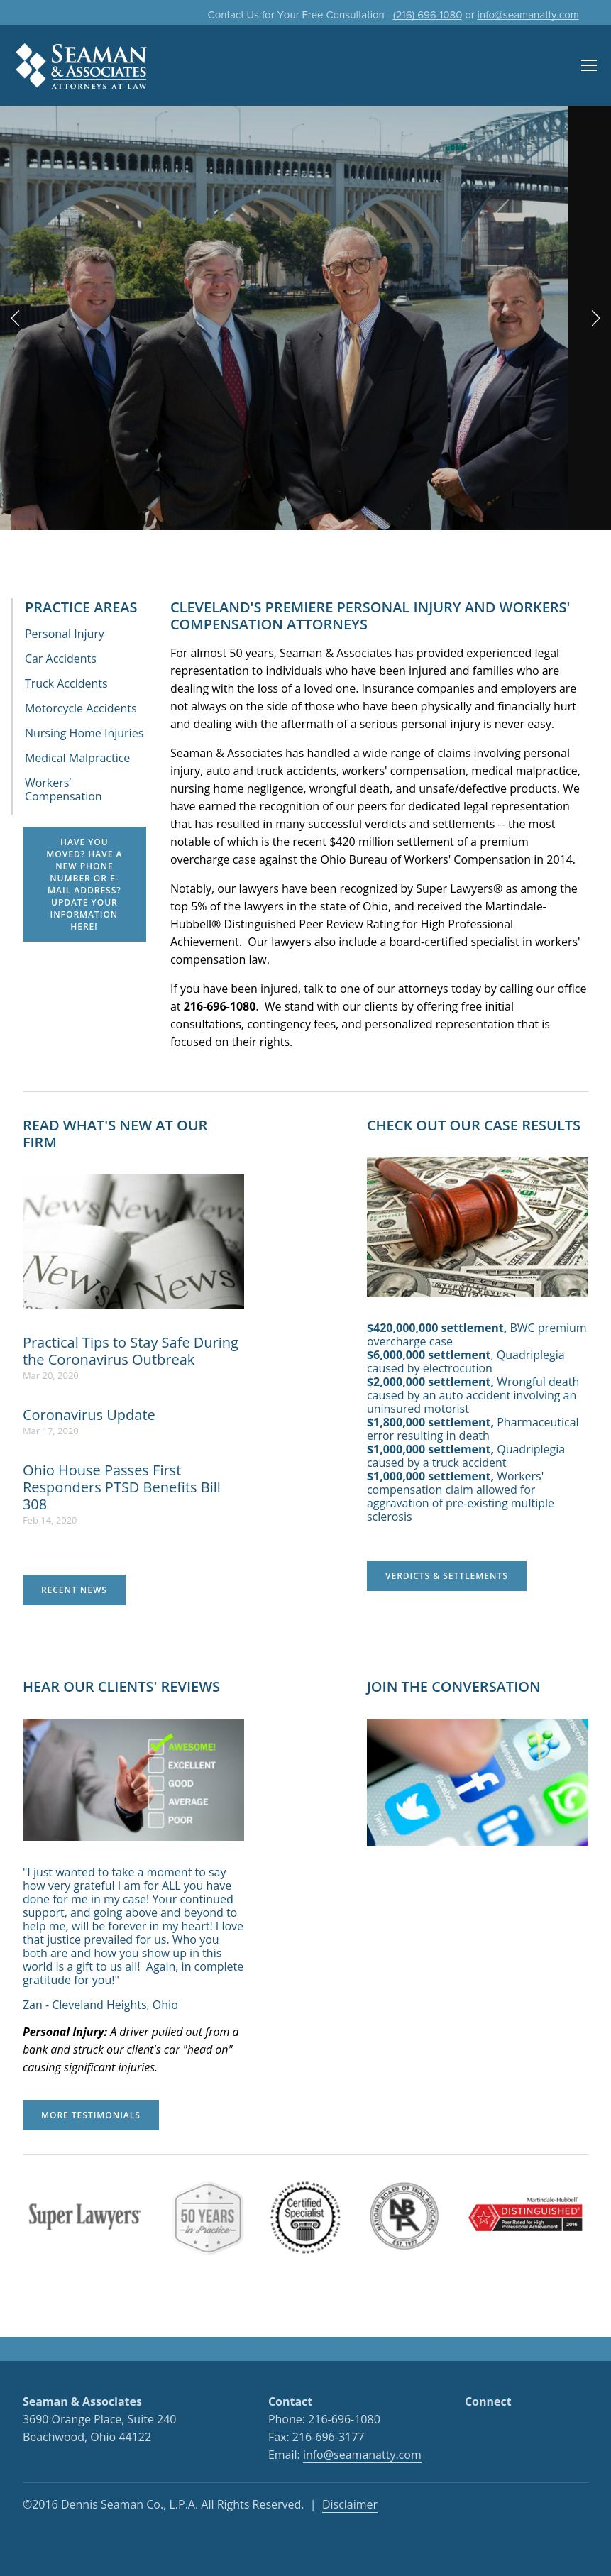 Seaman & Associates Co LPA - Cleveland OH Lawyers